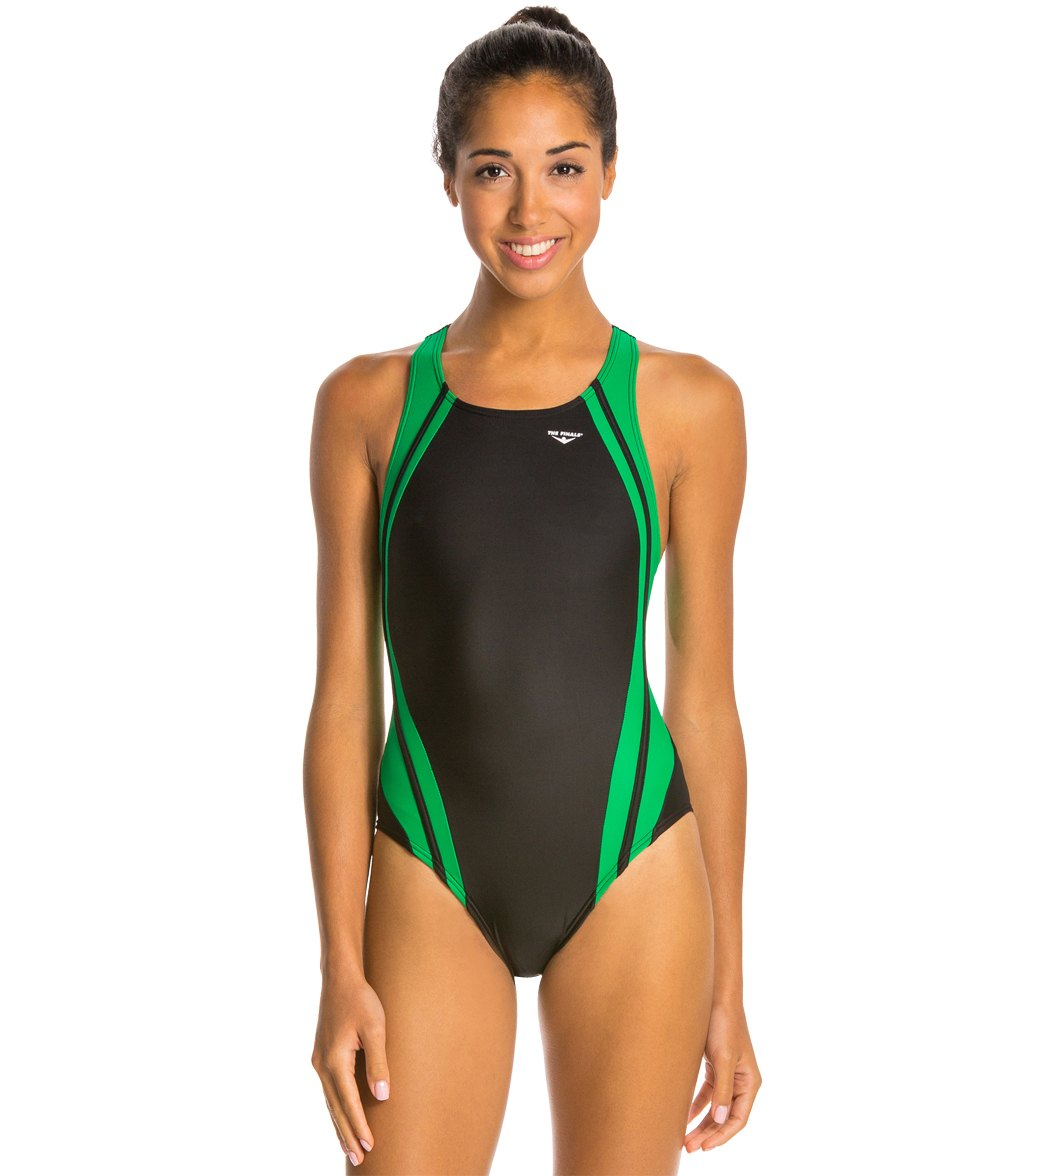 The Finals Reactor Splice Competition Back One Piece Swimsuit